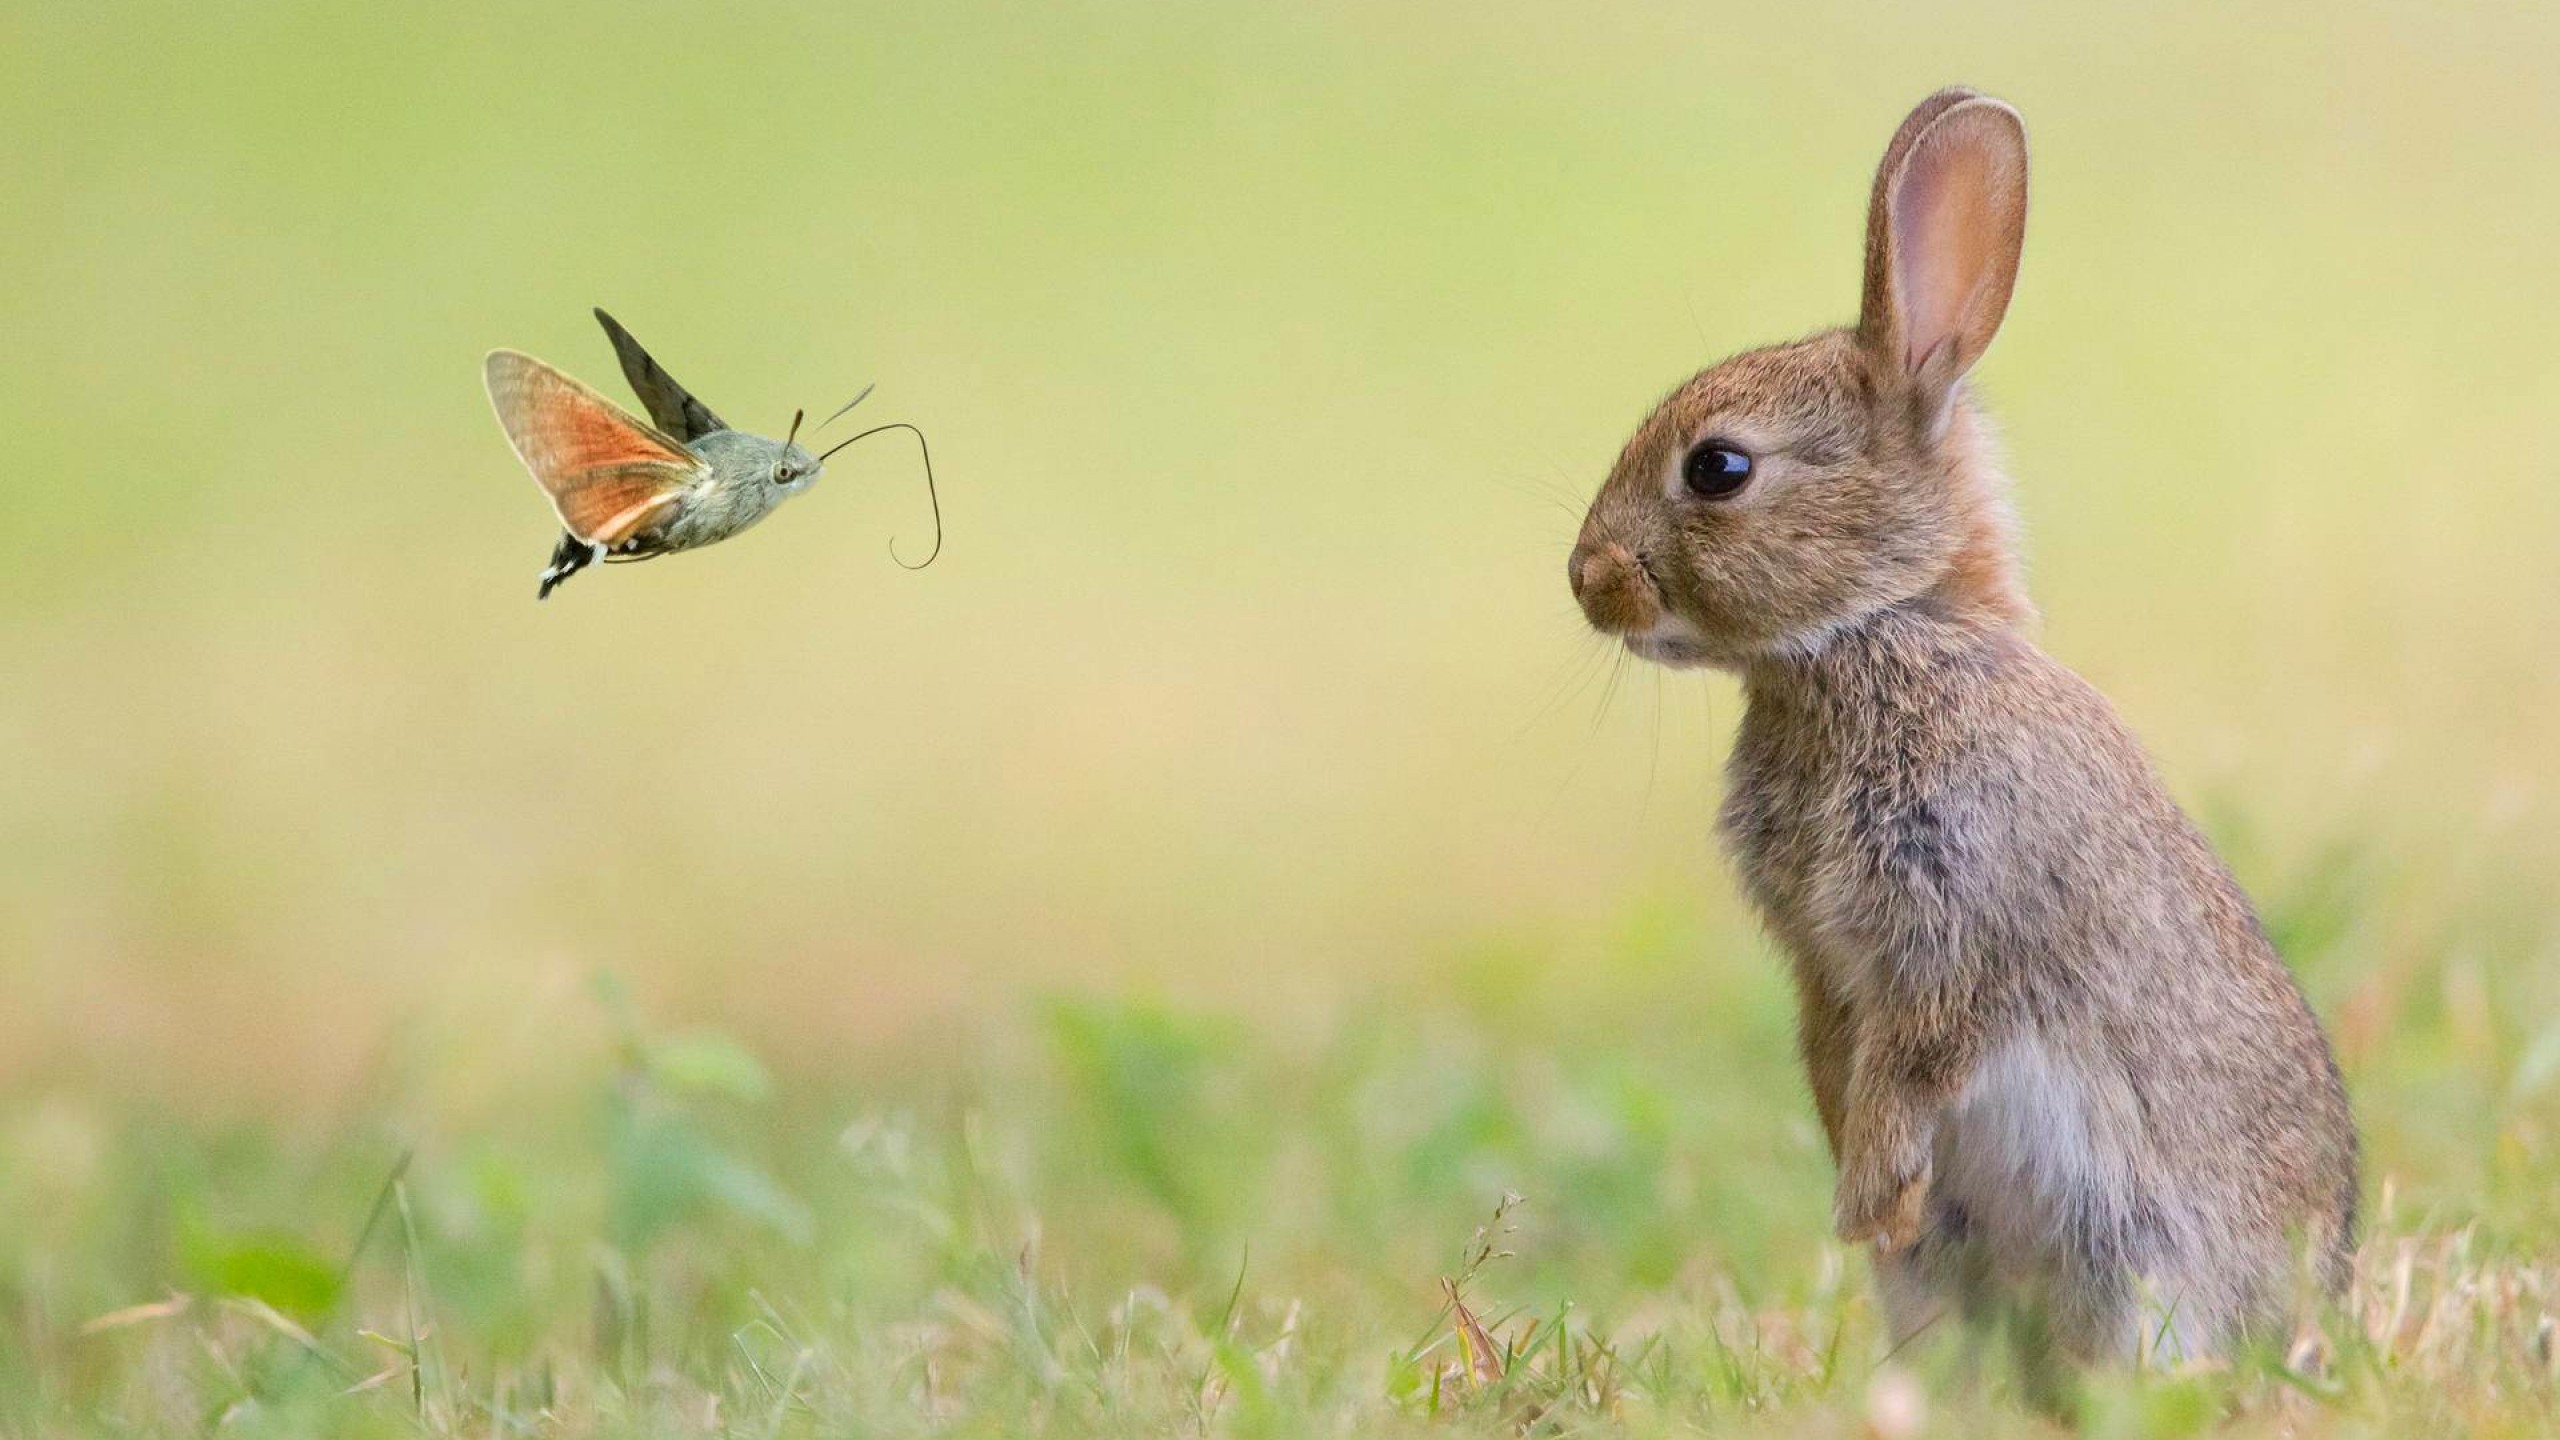 Cute Wallpapers With Quotes Hd Wallpaper Rabbit Cute Animals Butterfly 4k Animals 15980